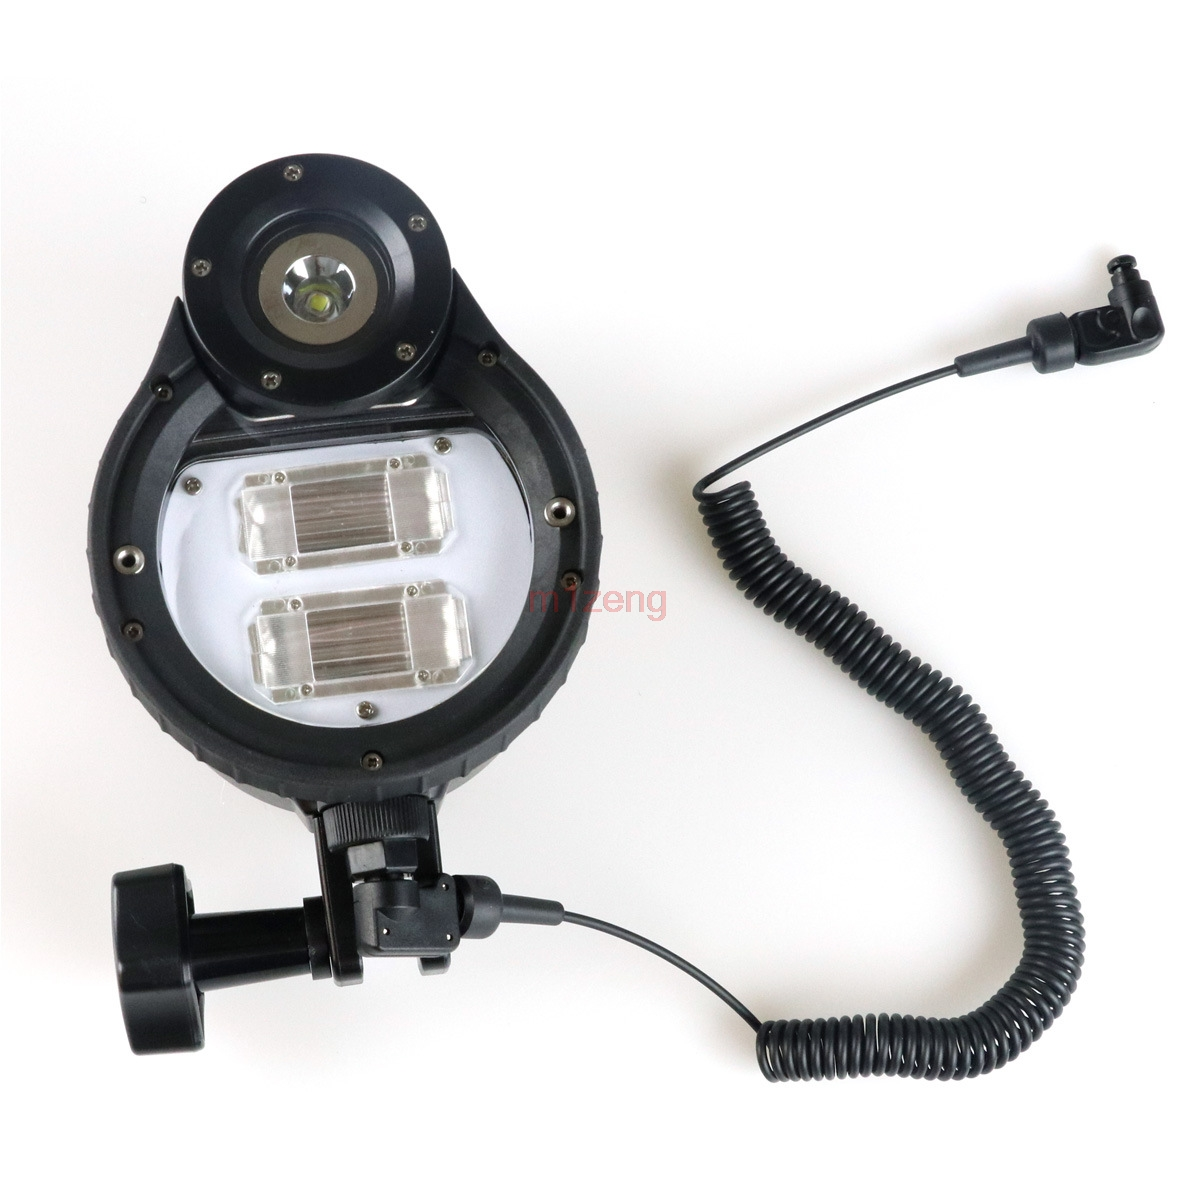 ST100 Flash Strobe underwater waterproof Light lamp For camera Housings Diving Case bag braun st100